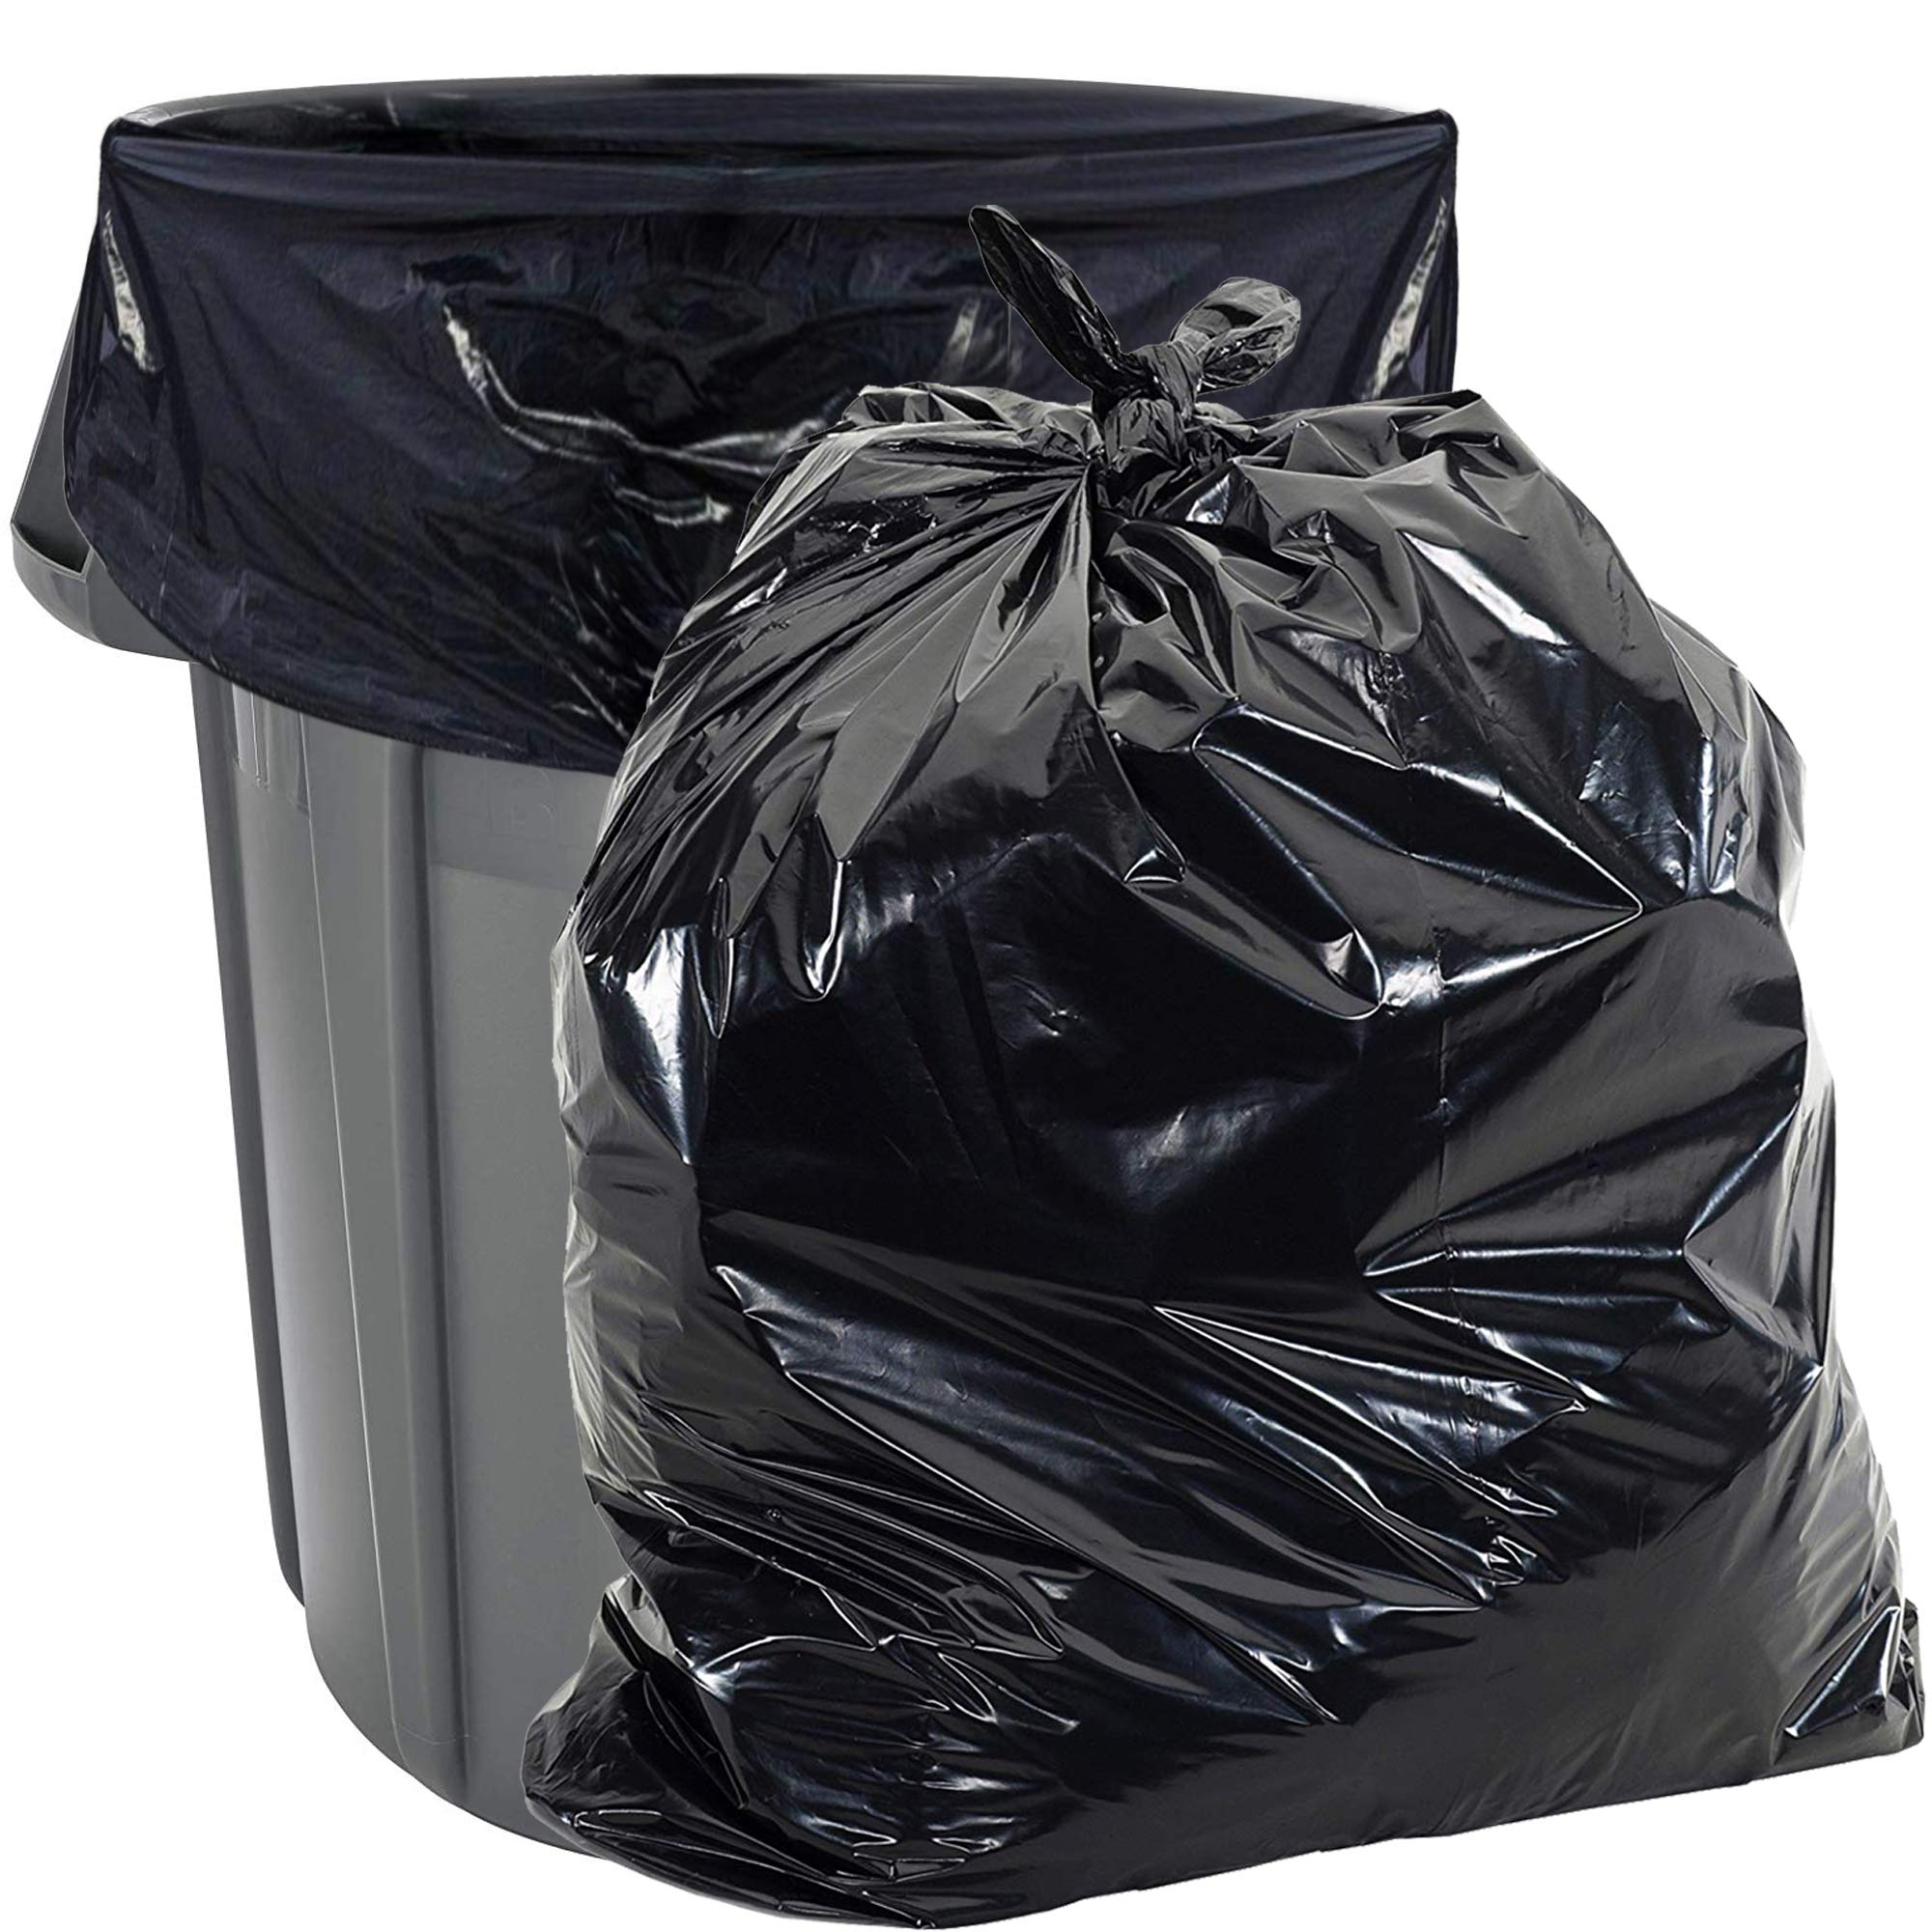 55 Gallon Trash Bags Heavy Duty - (Huge 100 Pack) - 2.0 MIL Thick - 38'' x 58'' - Garbage Bags for Toter, Contractors, Lawn, Leaf, Yard Waste, Commercial, Kitchen, Industrial, Construction, Garage